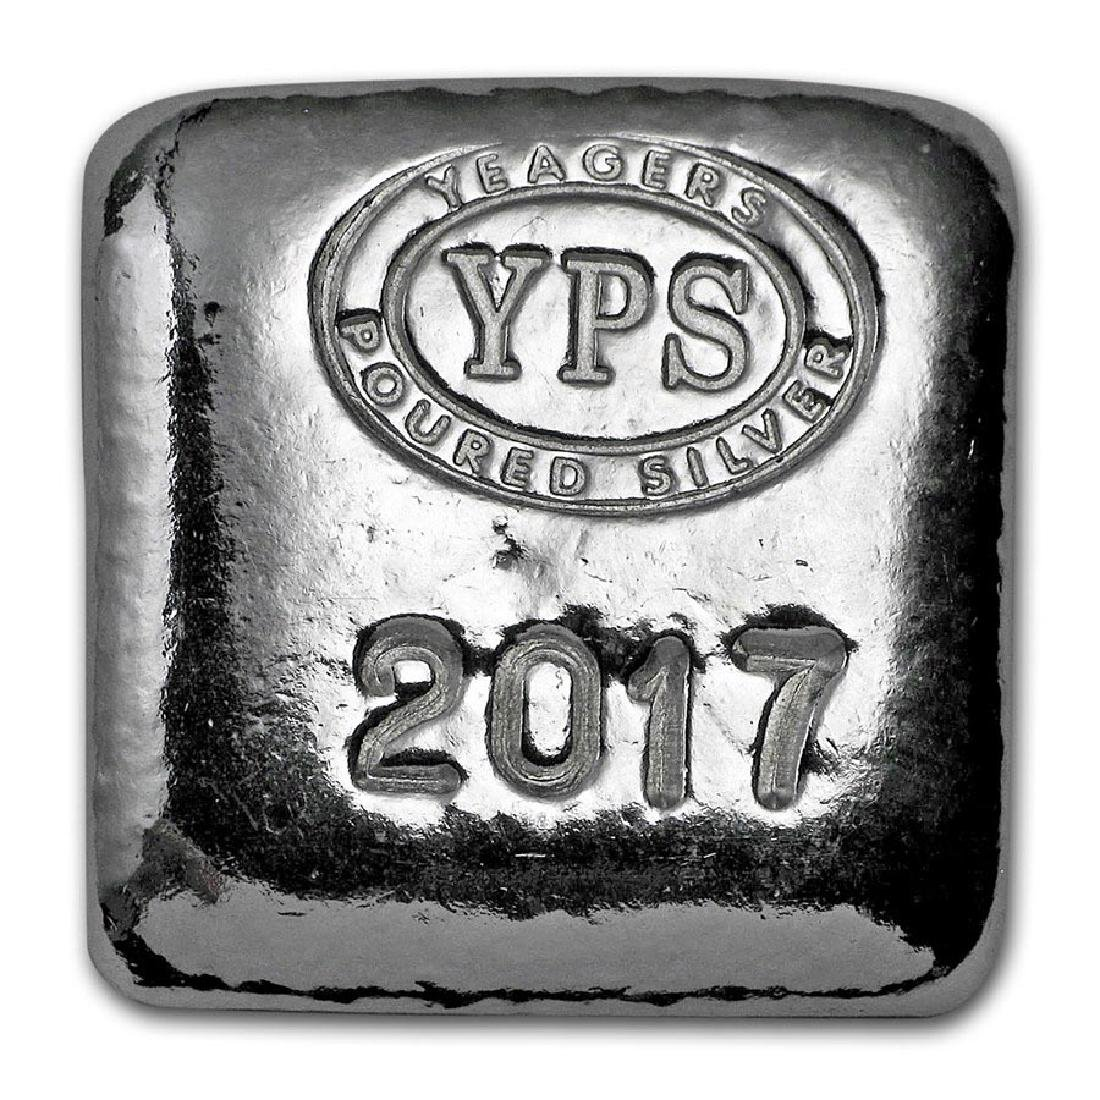 1 oz Silver Square - Yeager Poured Silver (2017 Edition